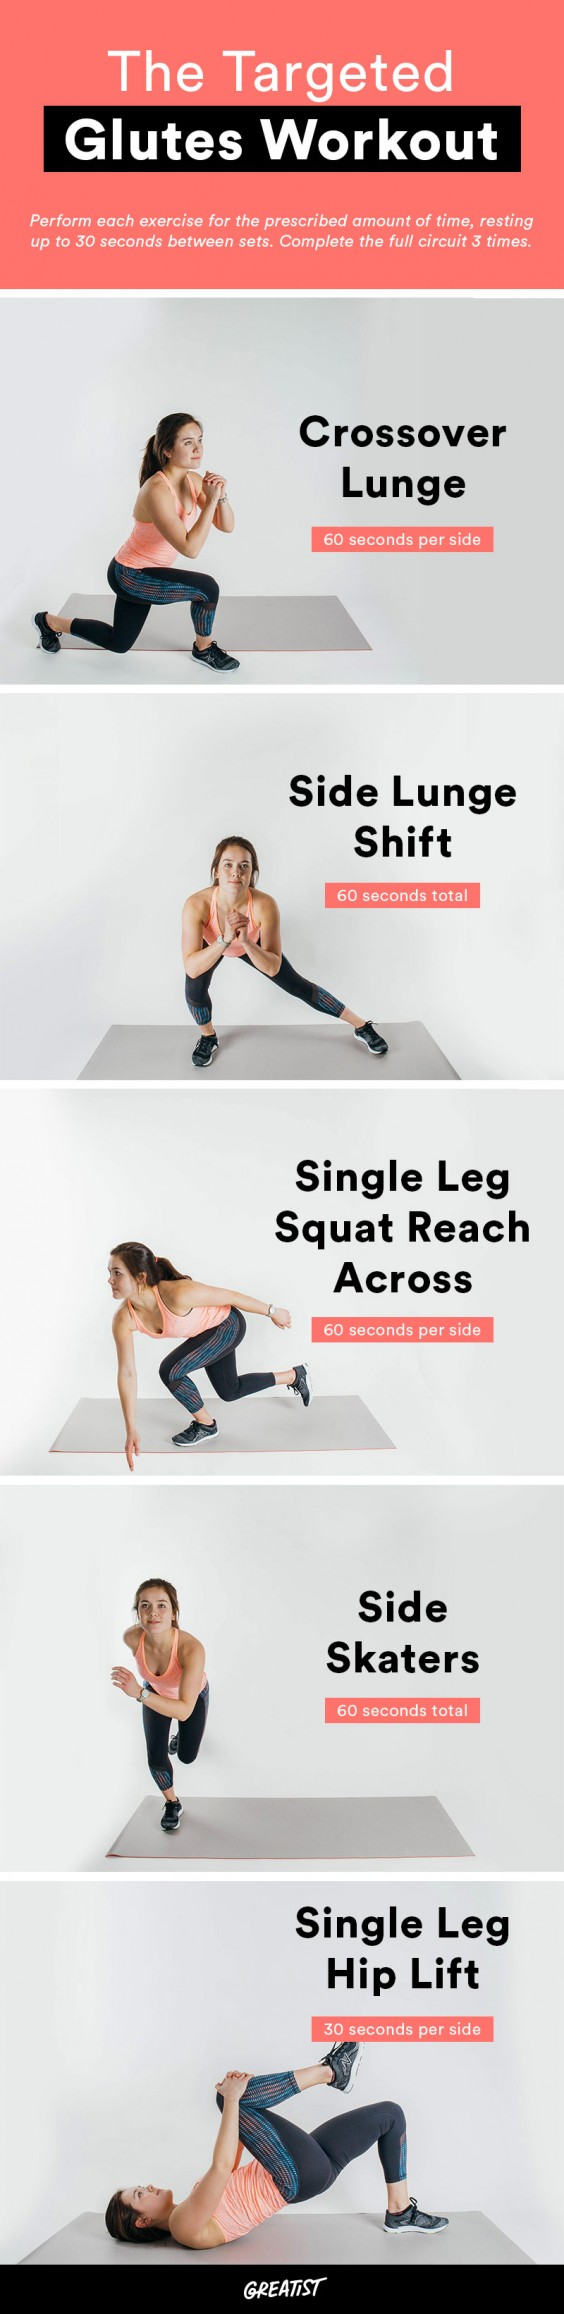 Best Exercises Workout